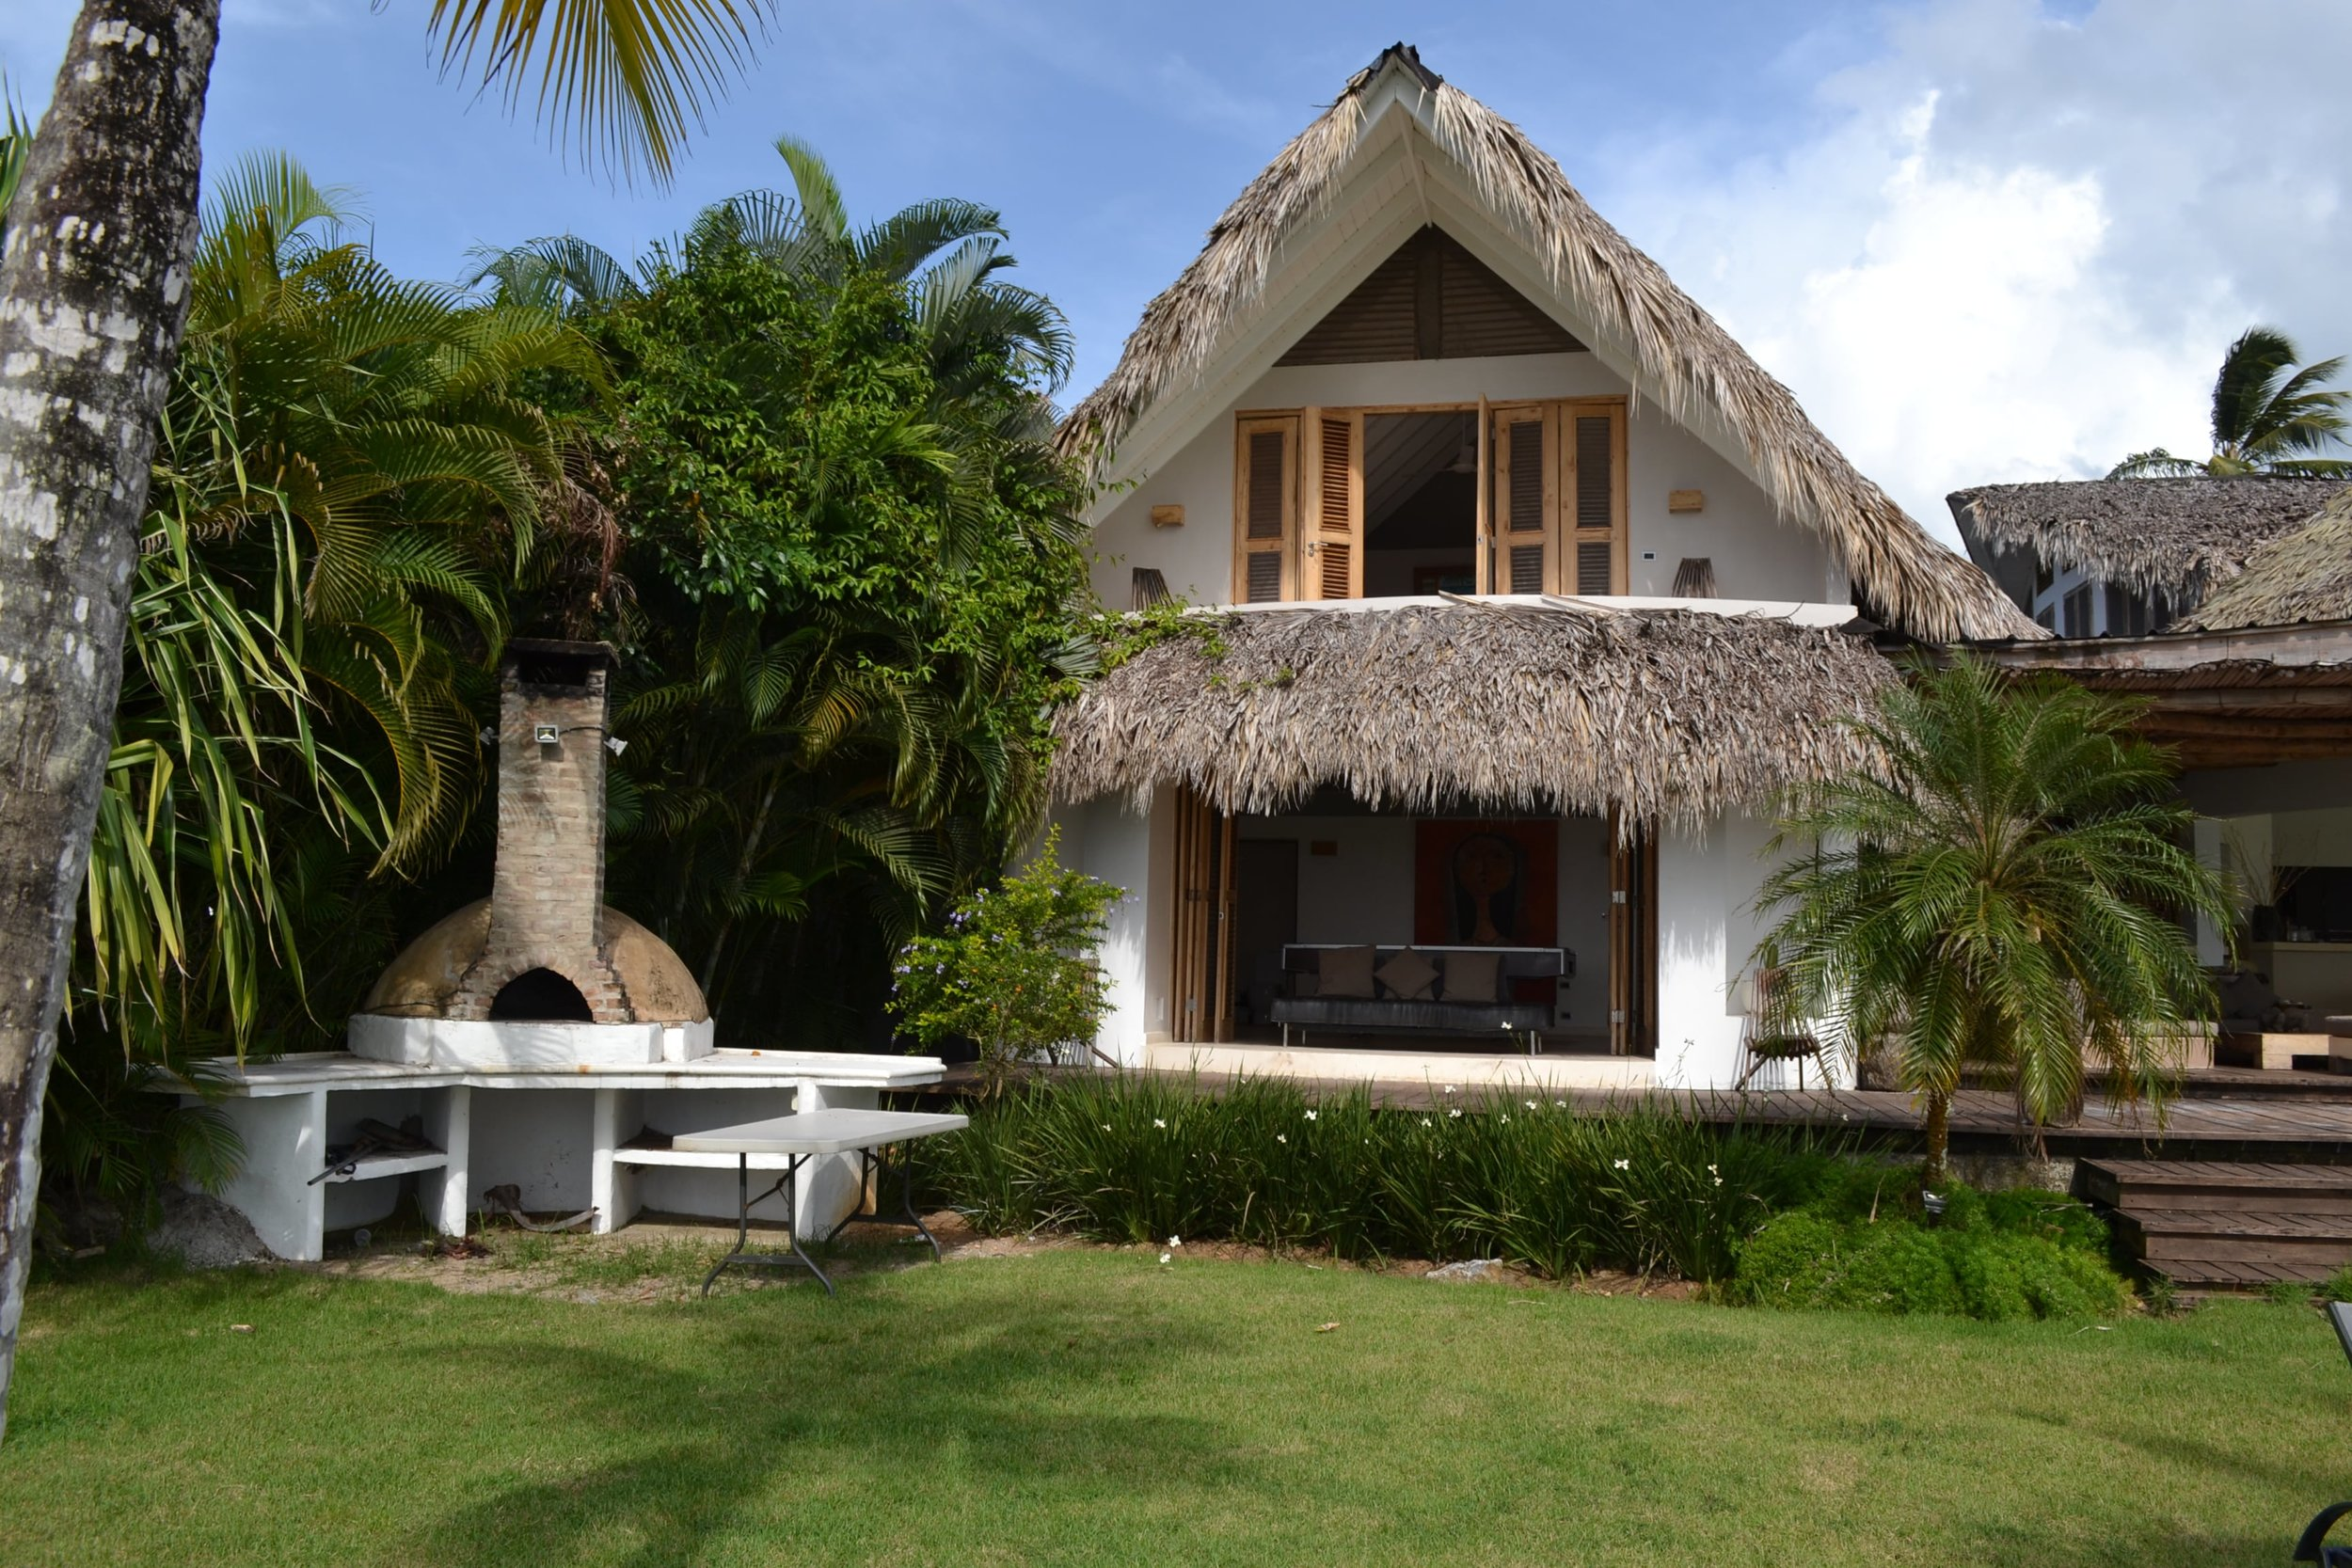 Villa for Sale Las Terrenas - Bungalow east - bedroom 5.JPG